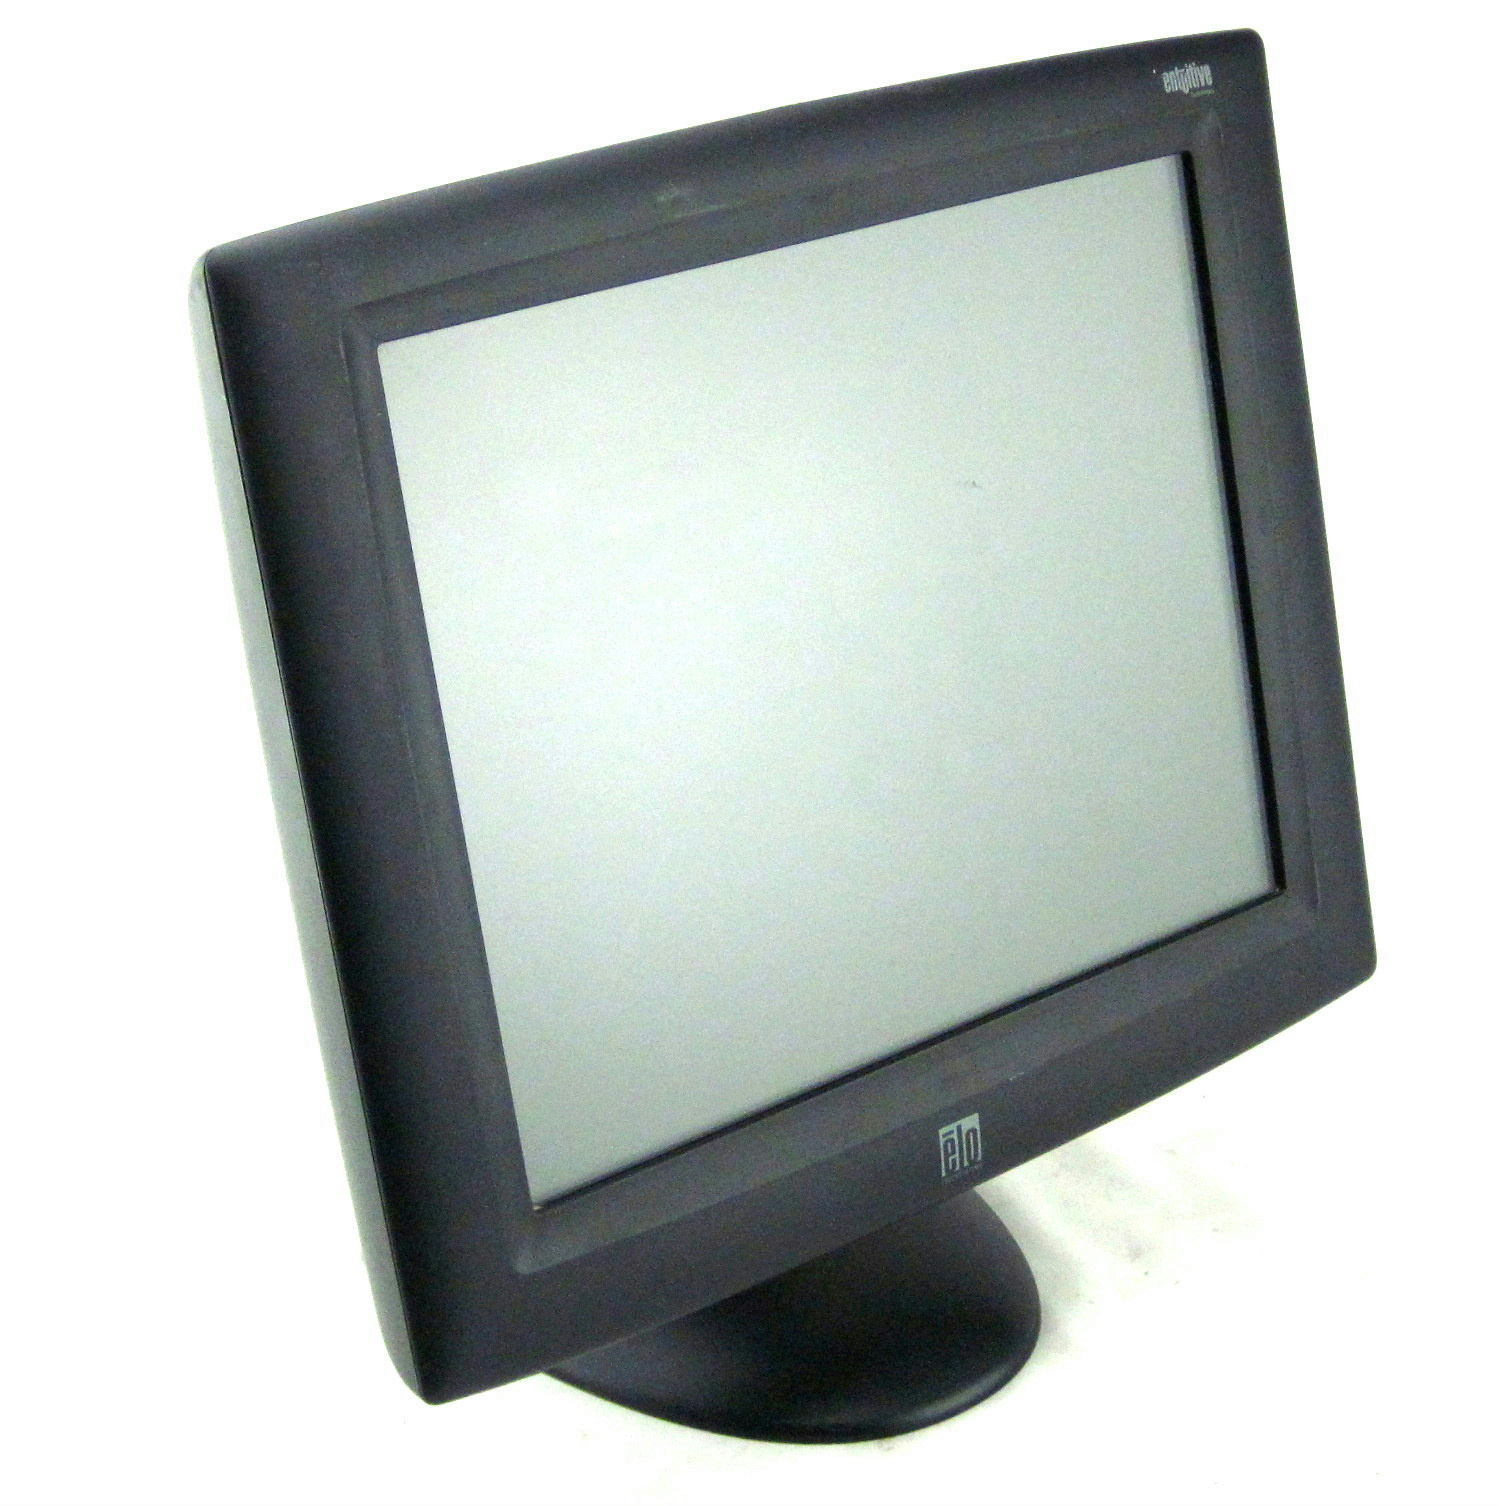 ELO TouchSystems 17 034 Entuitive Touch Screen Monitor 1725L Mprii ET1725L Working | eBay